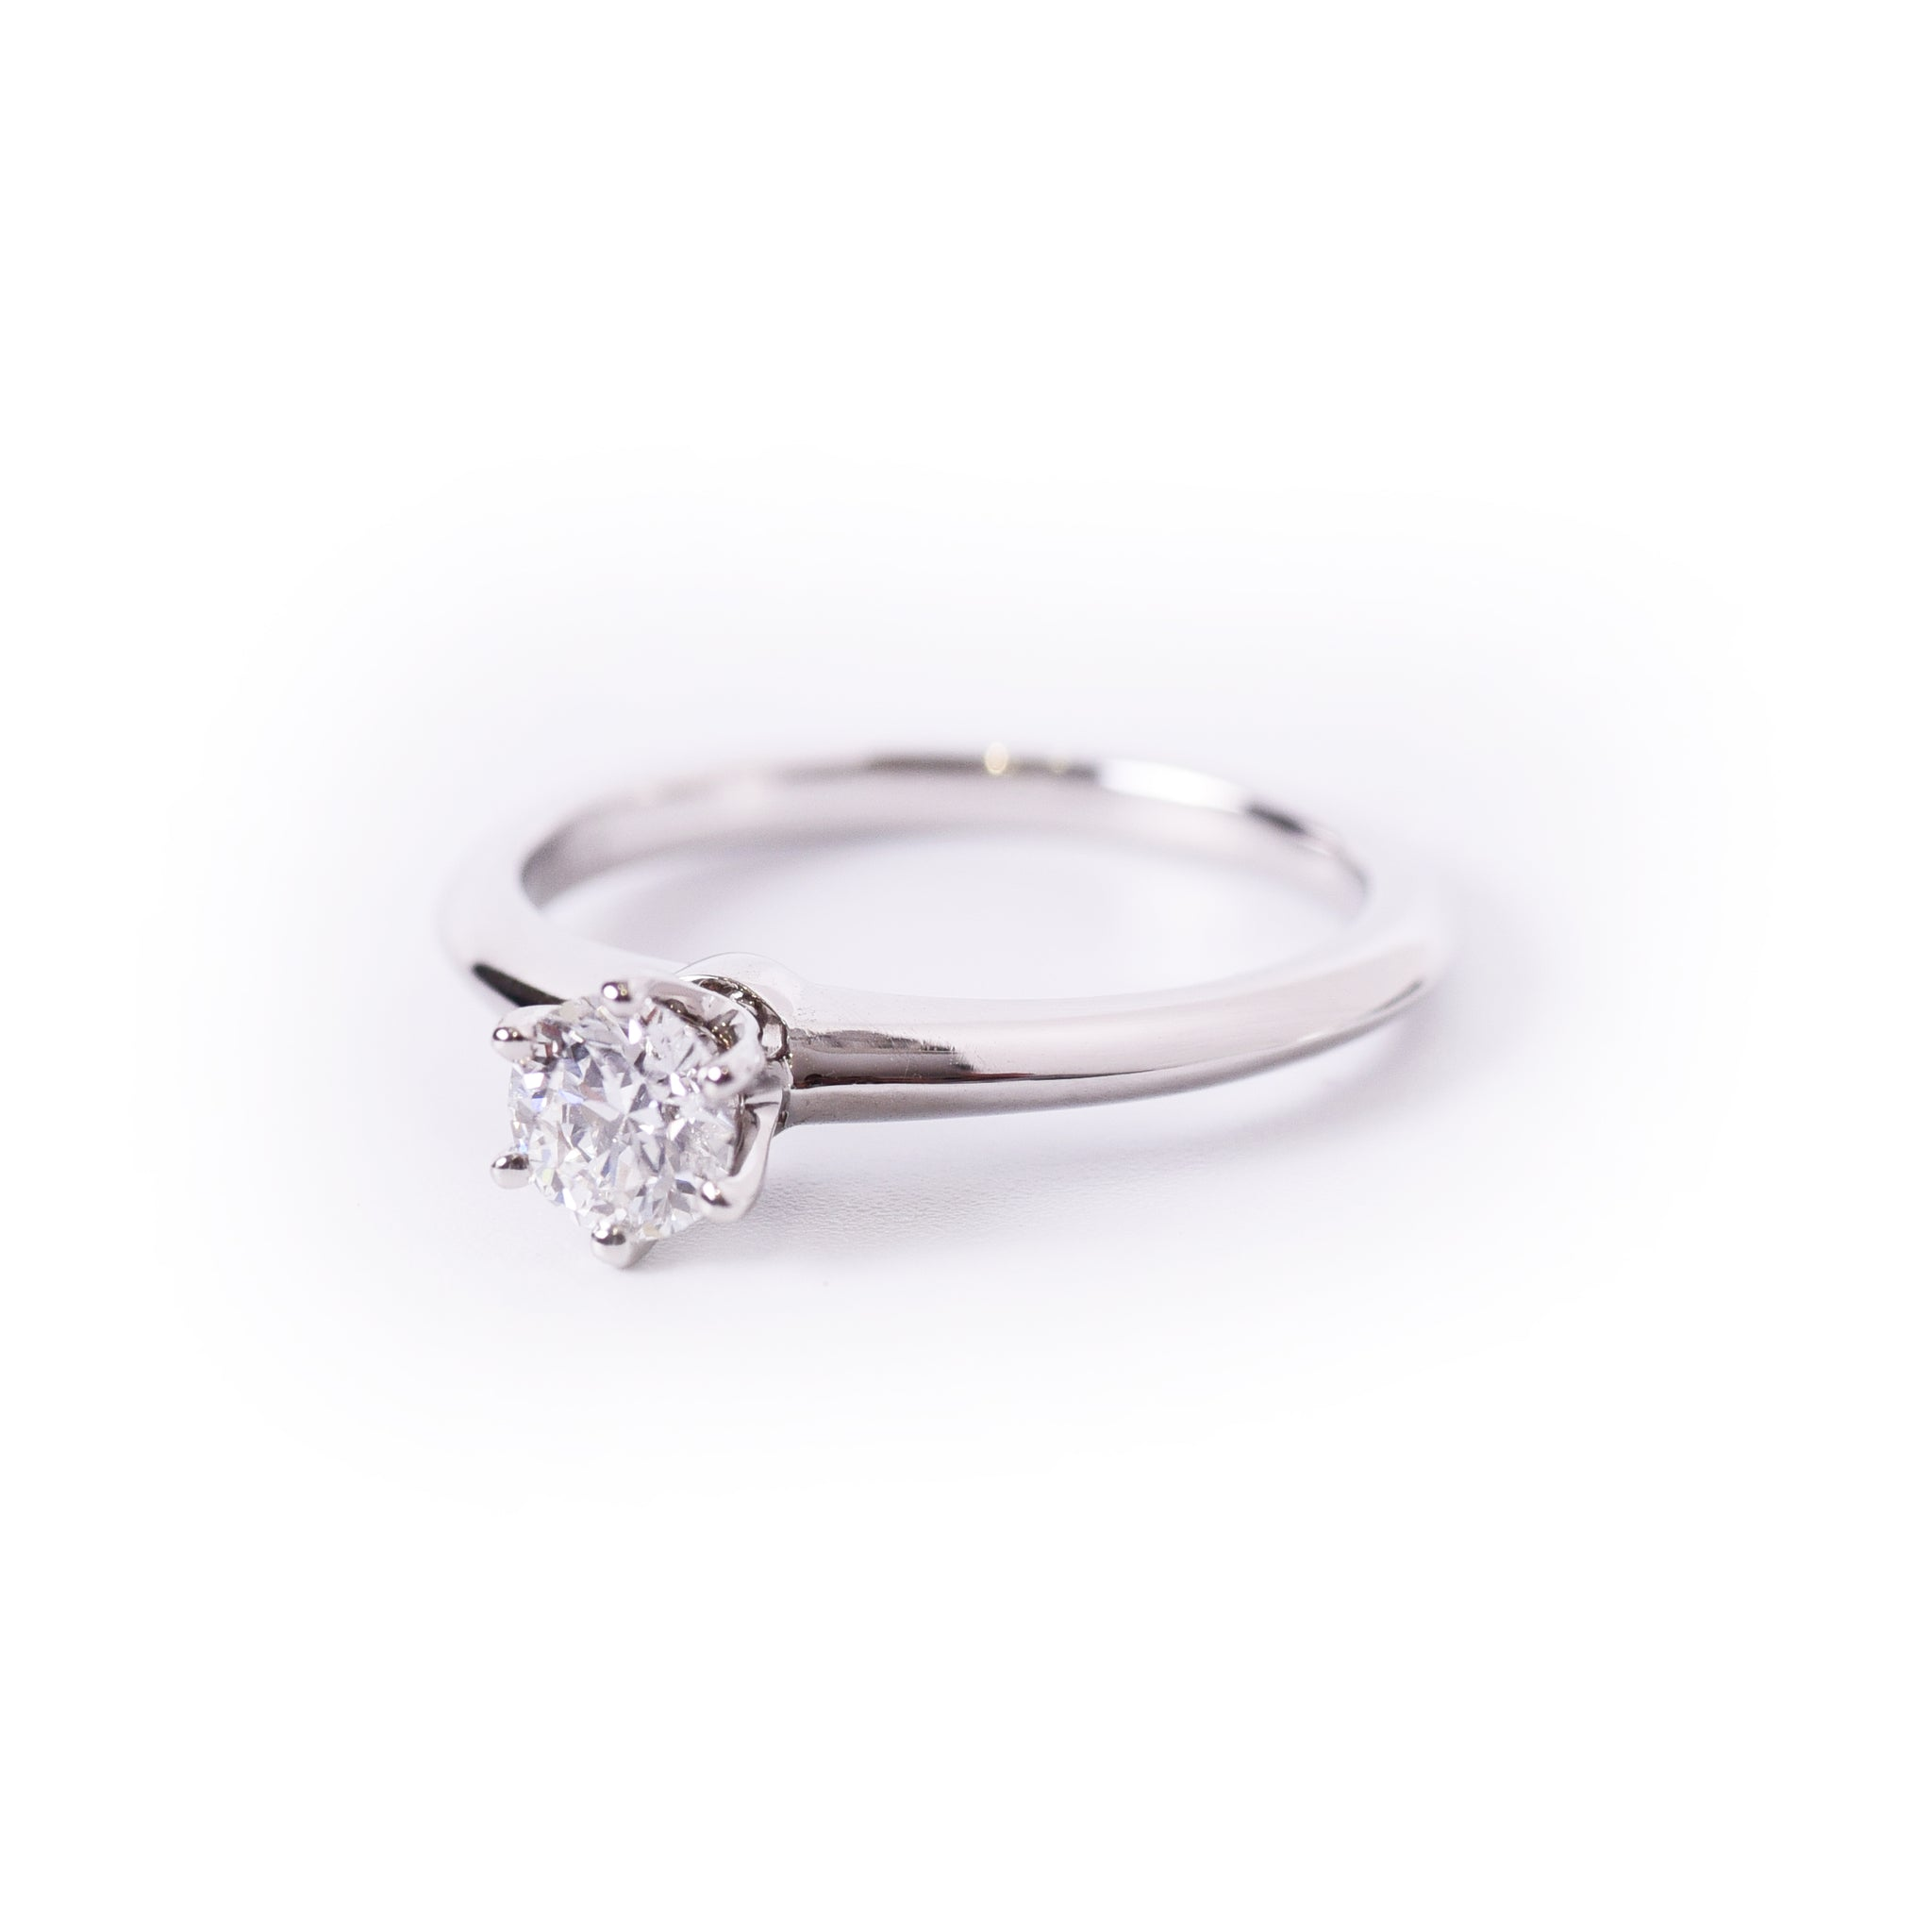 ring co single master tiffany platinum id diamond at solitaire stone jewelry rings carat j and